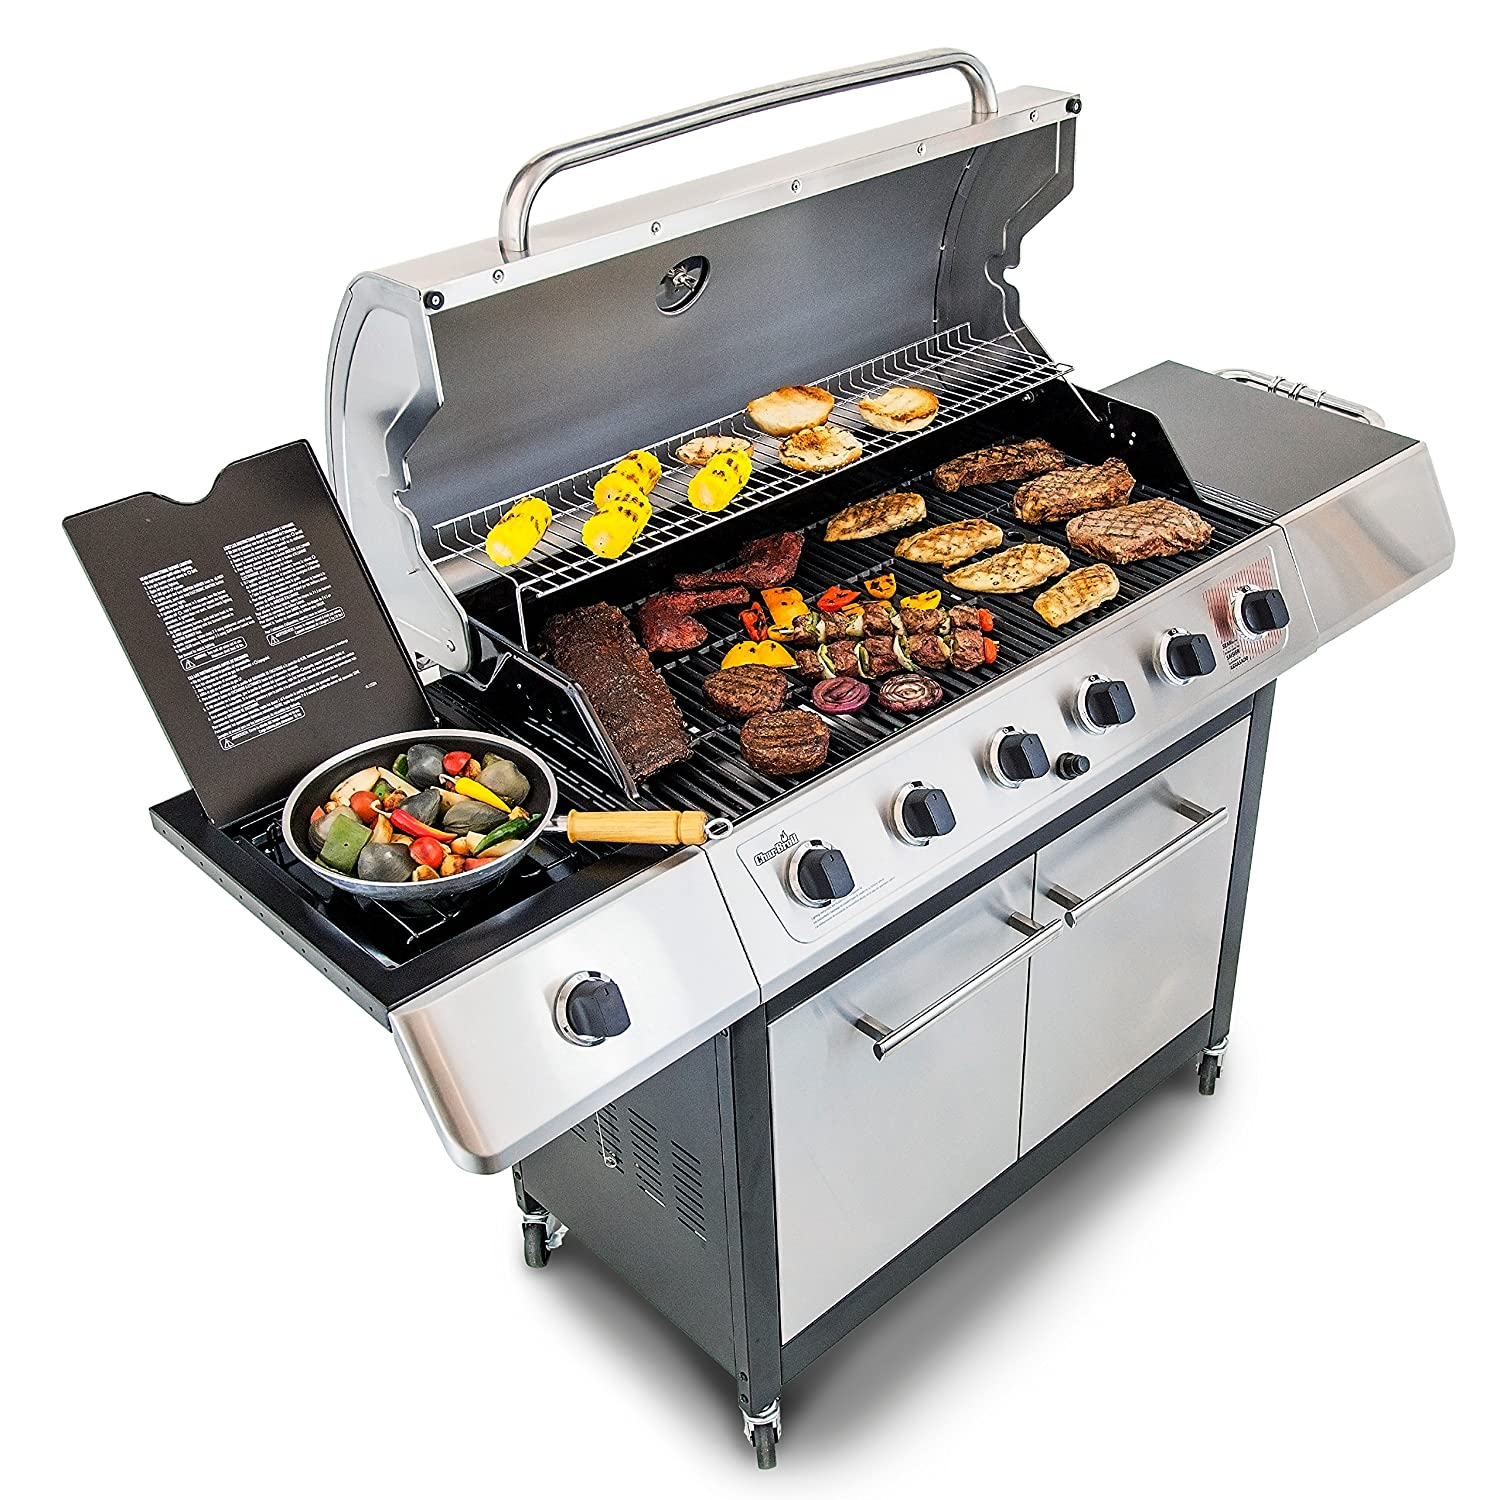 The Best Gas Grill Under $500 For Your Propane Grilling ...